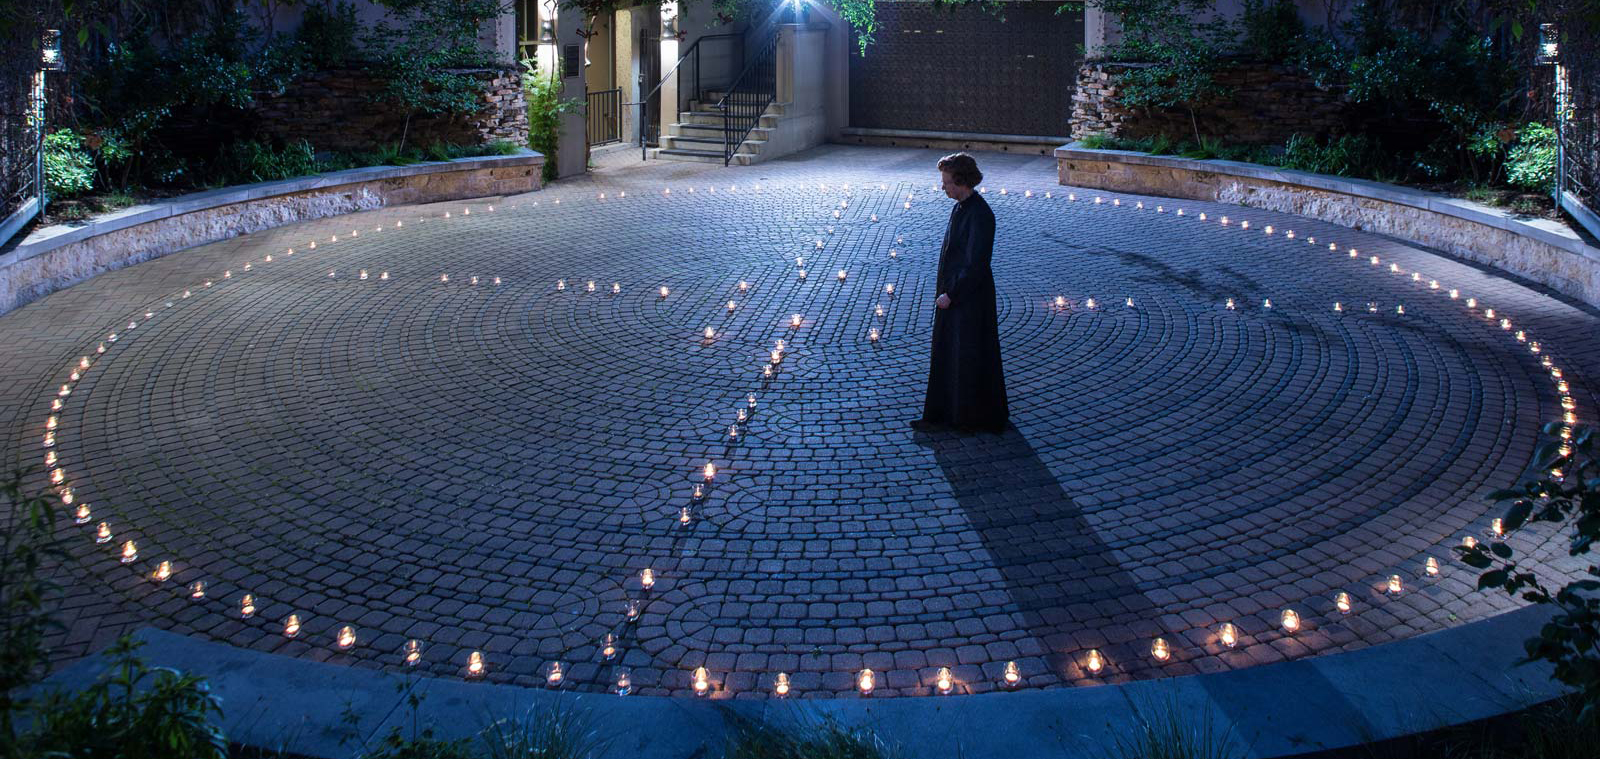 Labyrinth Walking as a Spiritual Practice